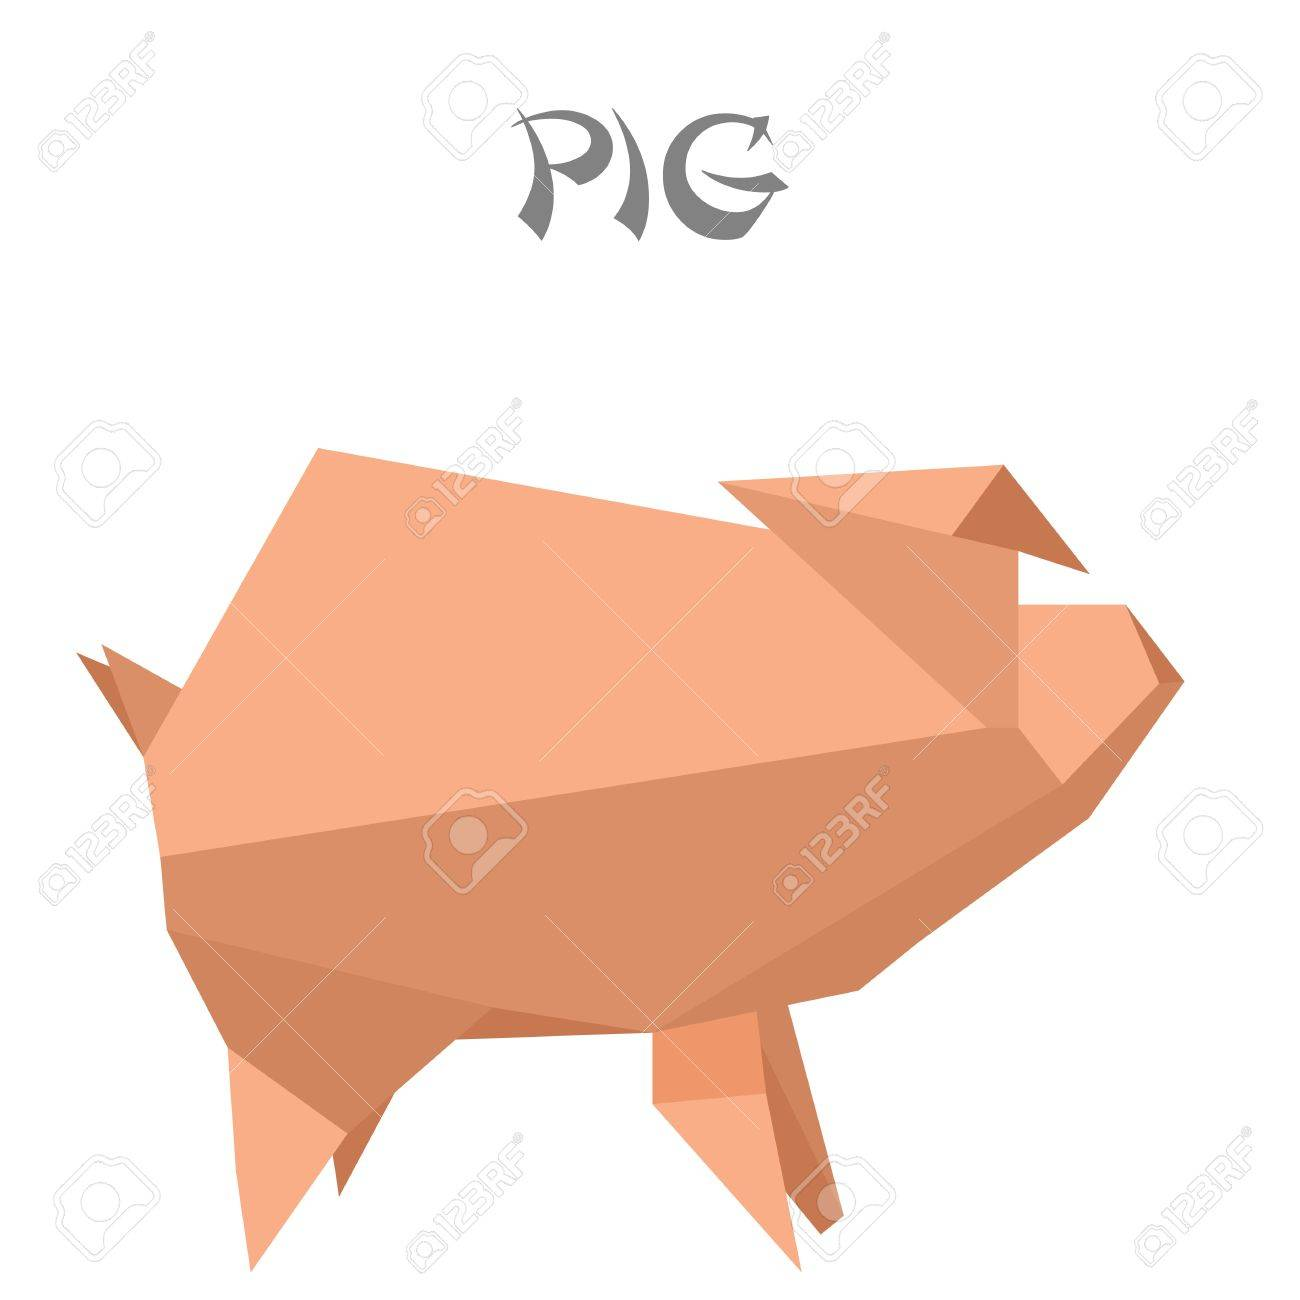 illustration of an origami pig Stock Vector - 14969749